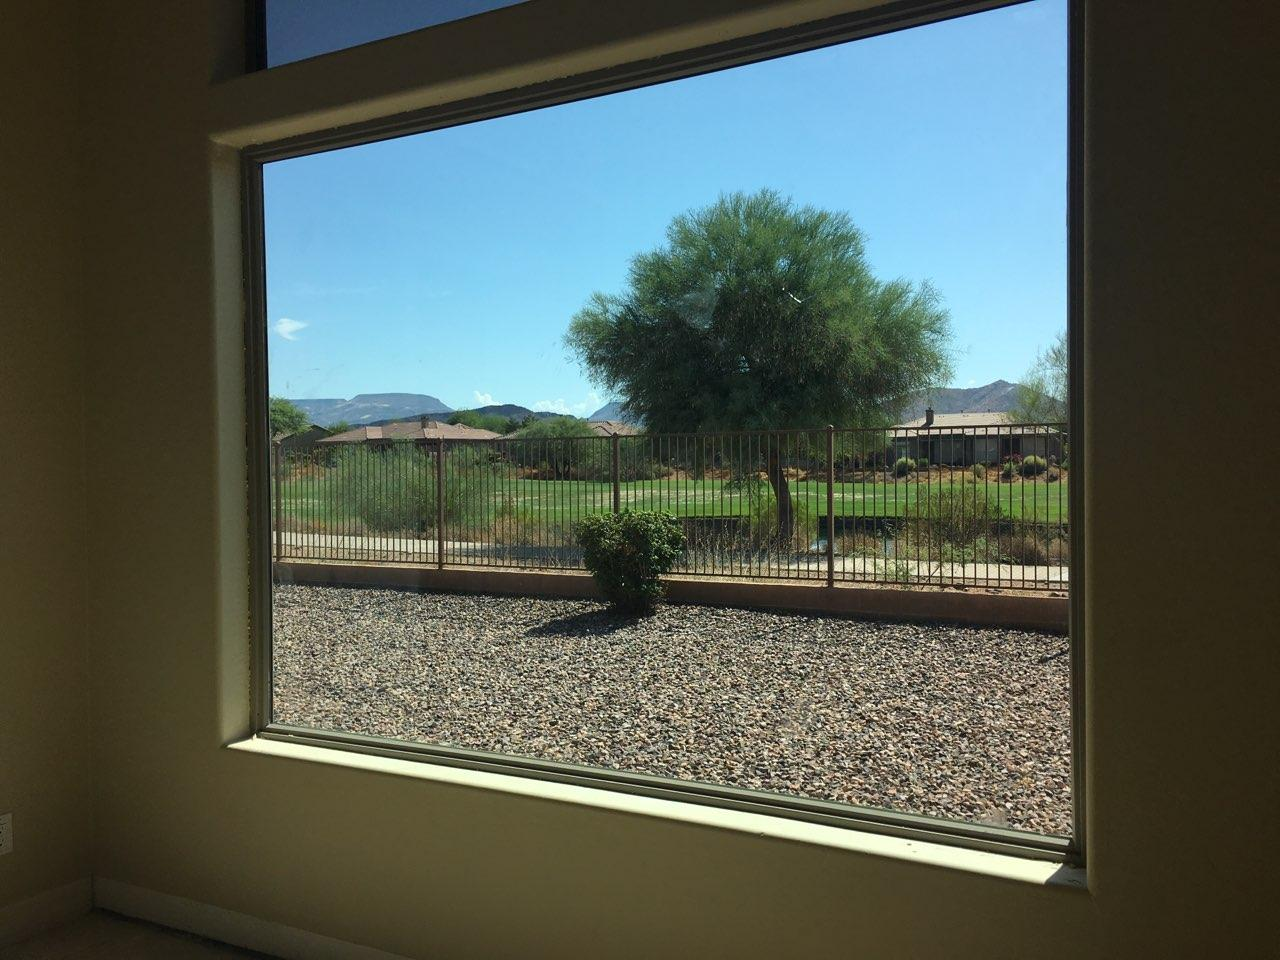 Arizona Window and Door in Scottsdale and Tucson showing vinyl window to outside